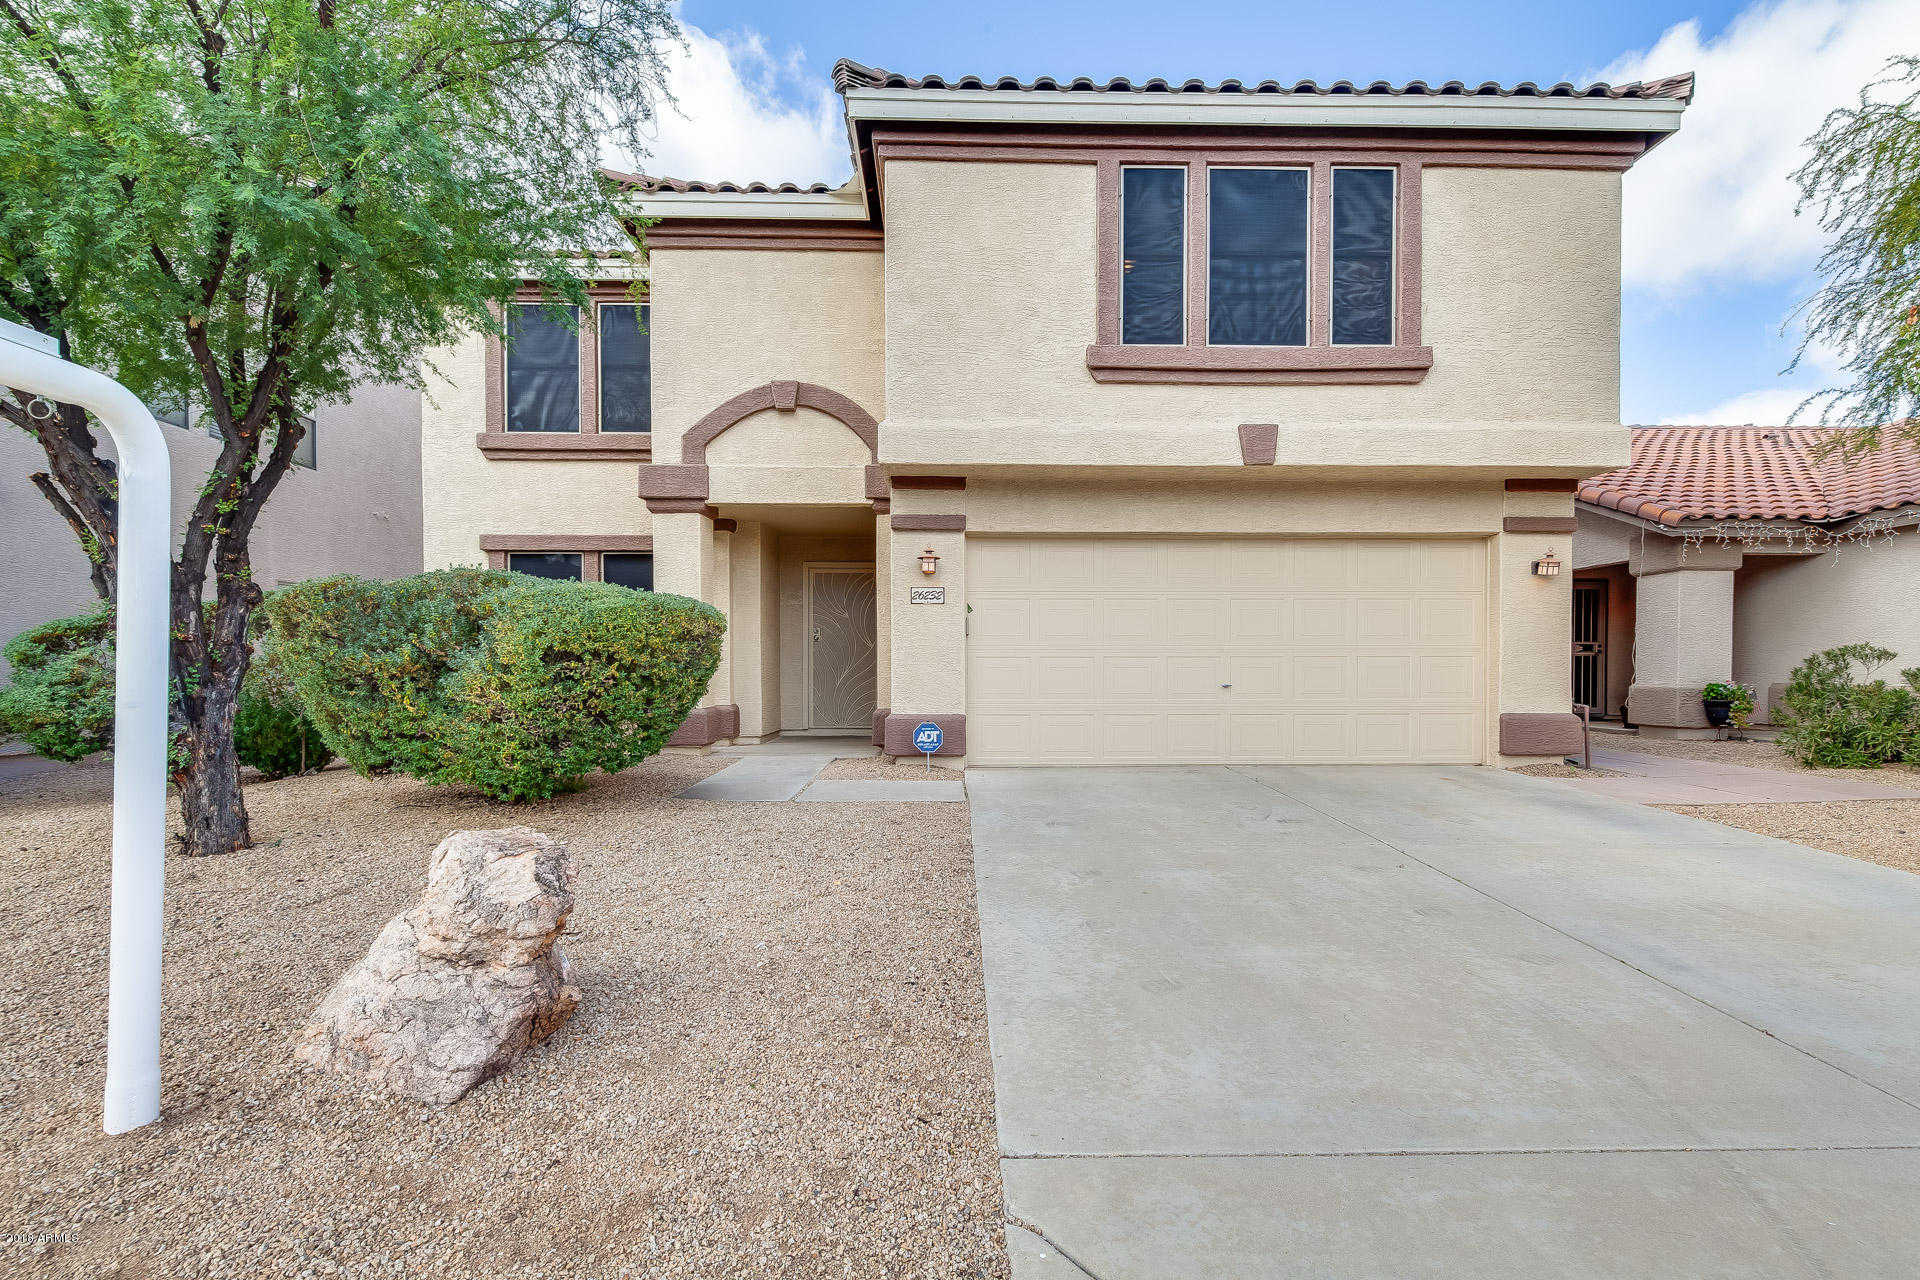 $393,000 - 4Br/3Ba - Home for Sale in Tatum Highlands Parcel 21, Phoenix